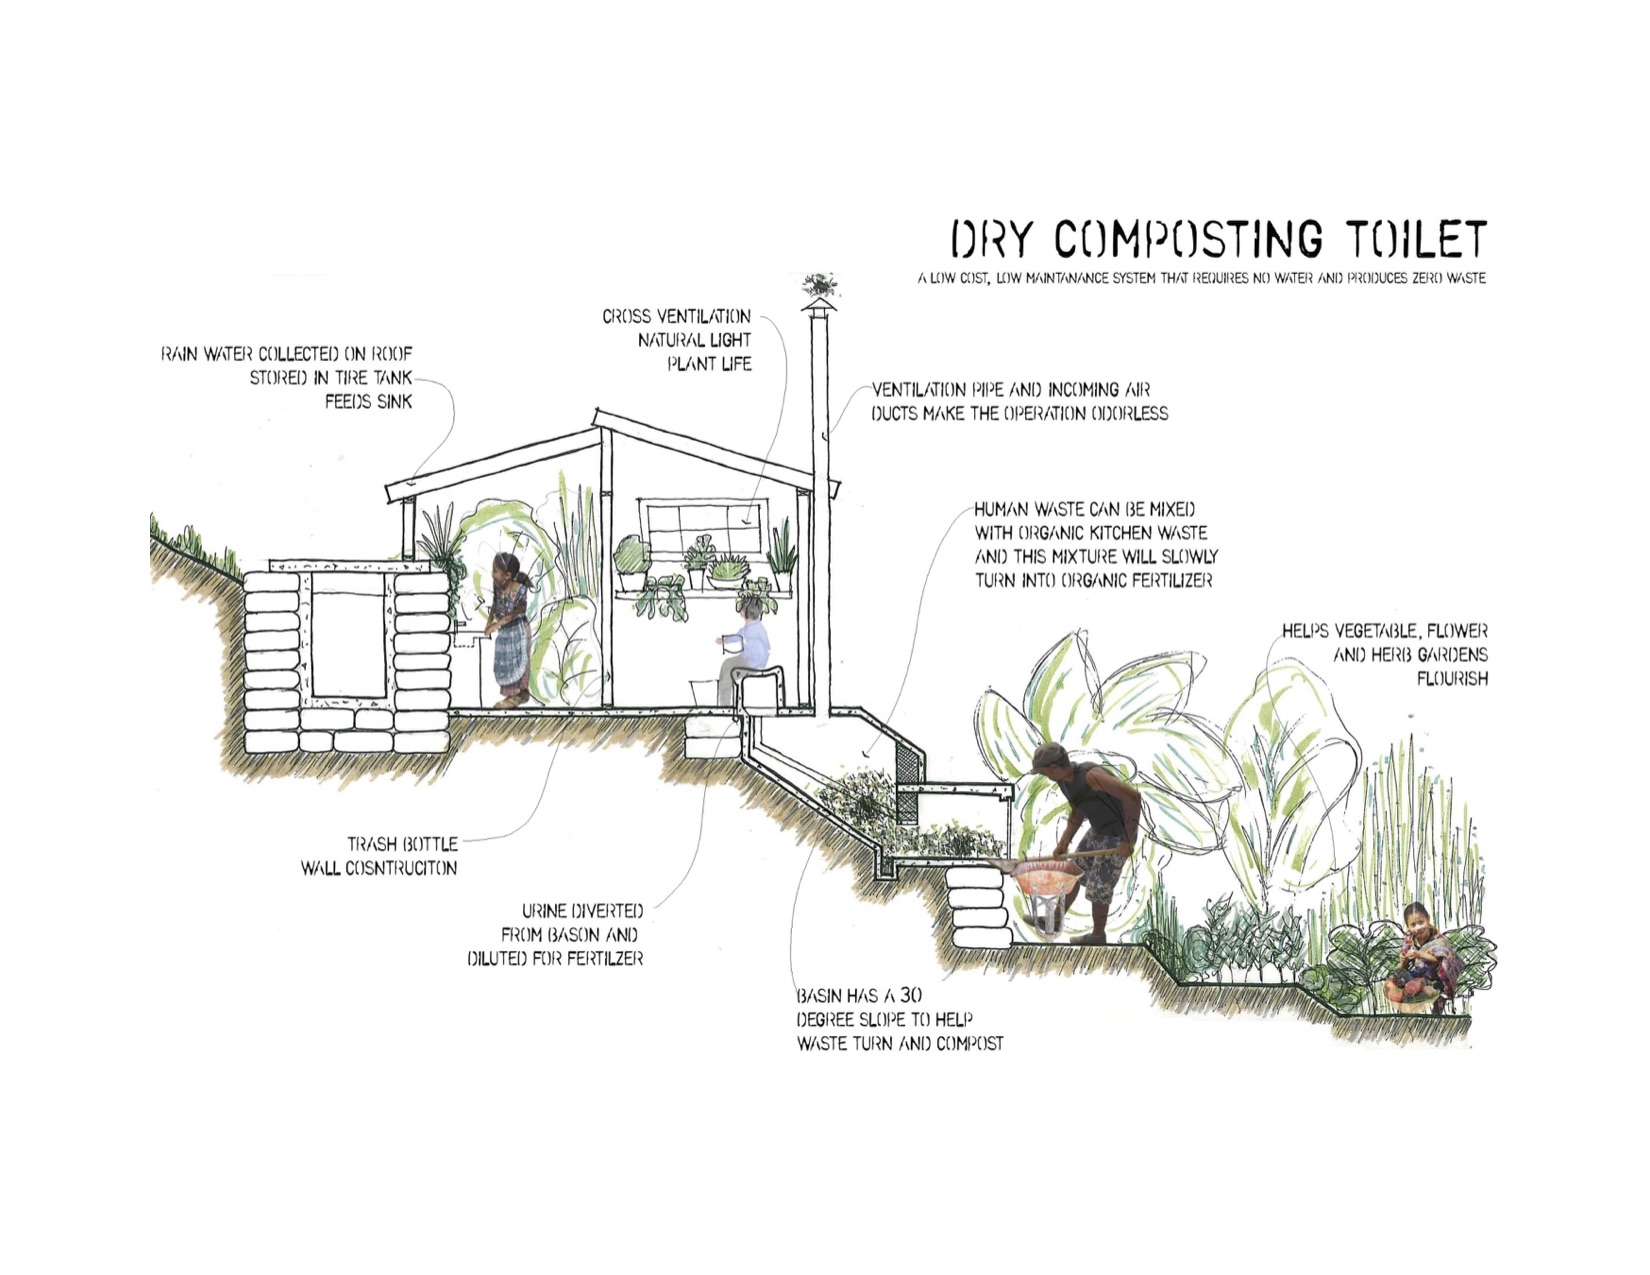 Dry Composting Toilet.  A low cost, low maintenance system that requires no water and produces zero waste